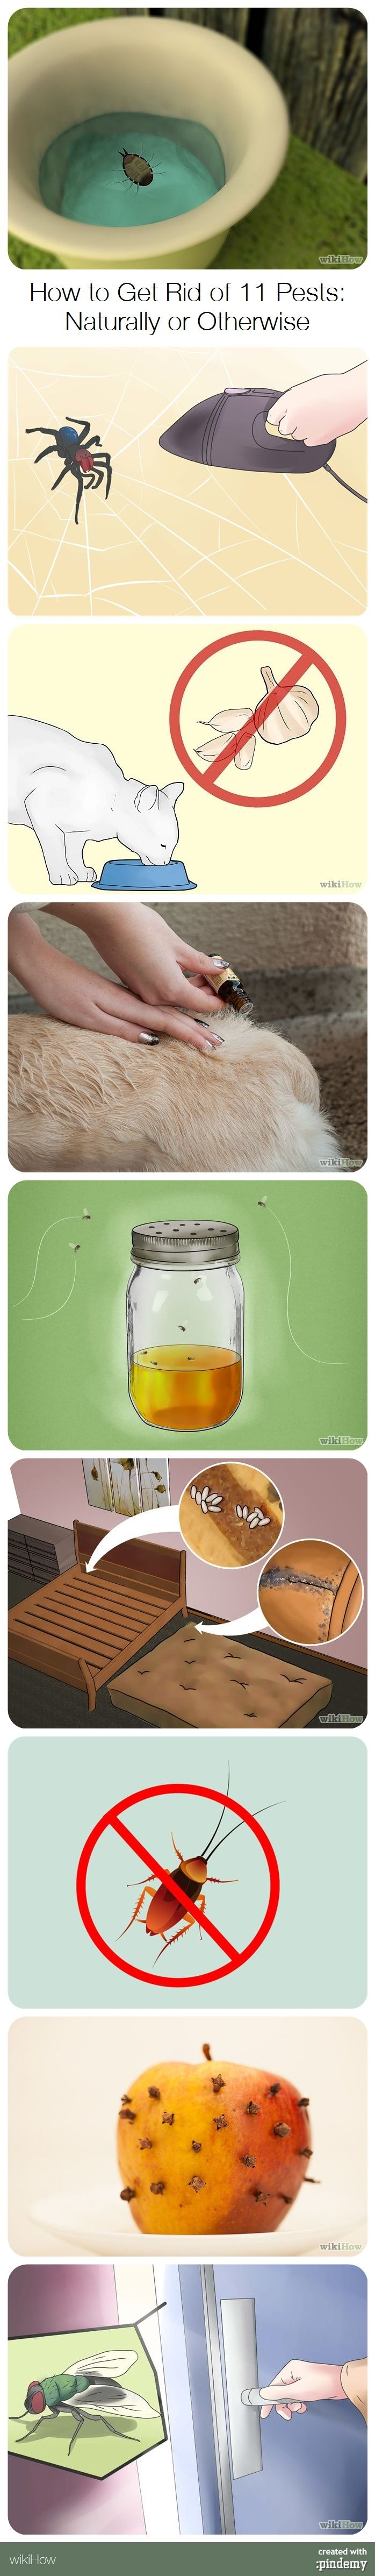 How to Get Rid of 11 Pests: Naturally or Otherwise (Stink Bugs, Spiders, Fleas, Gnats, Bed Bugs, Flies, Ticks, Ants, Wasps and Bees, Mosquitoes, Cockroaches) with a PSA for Cat Owners! #home #gardening #animals